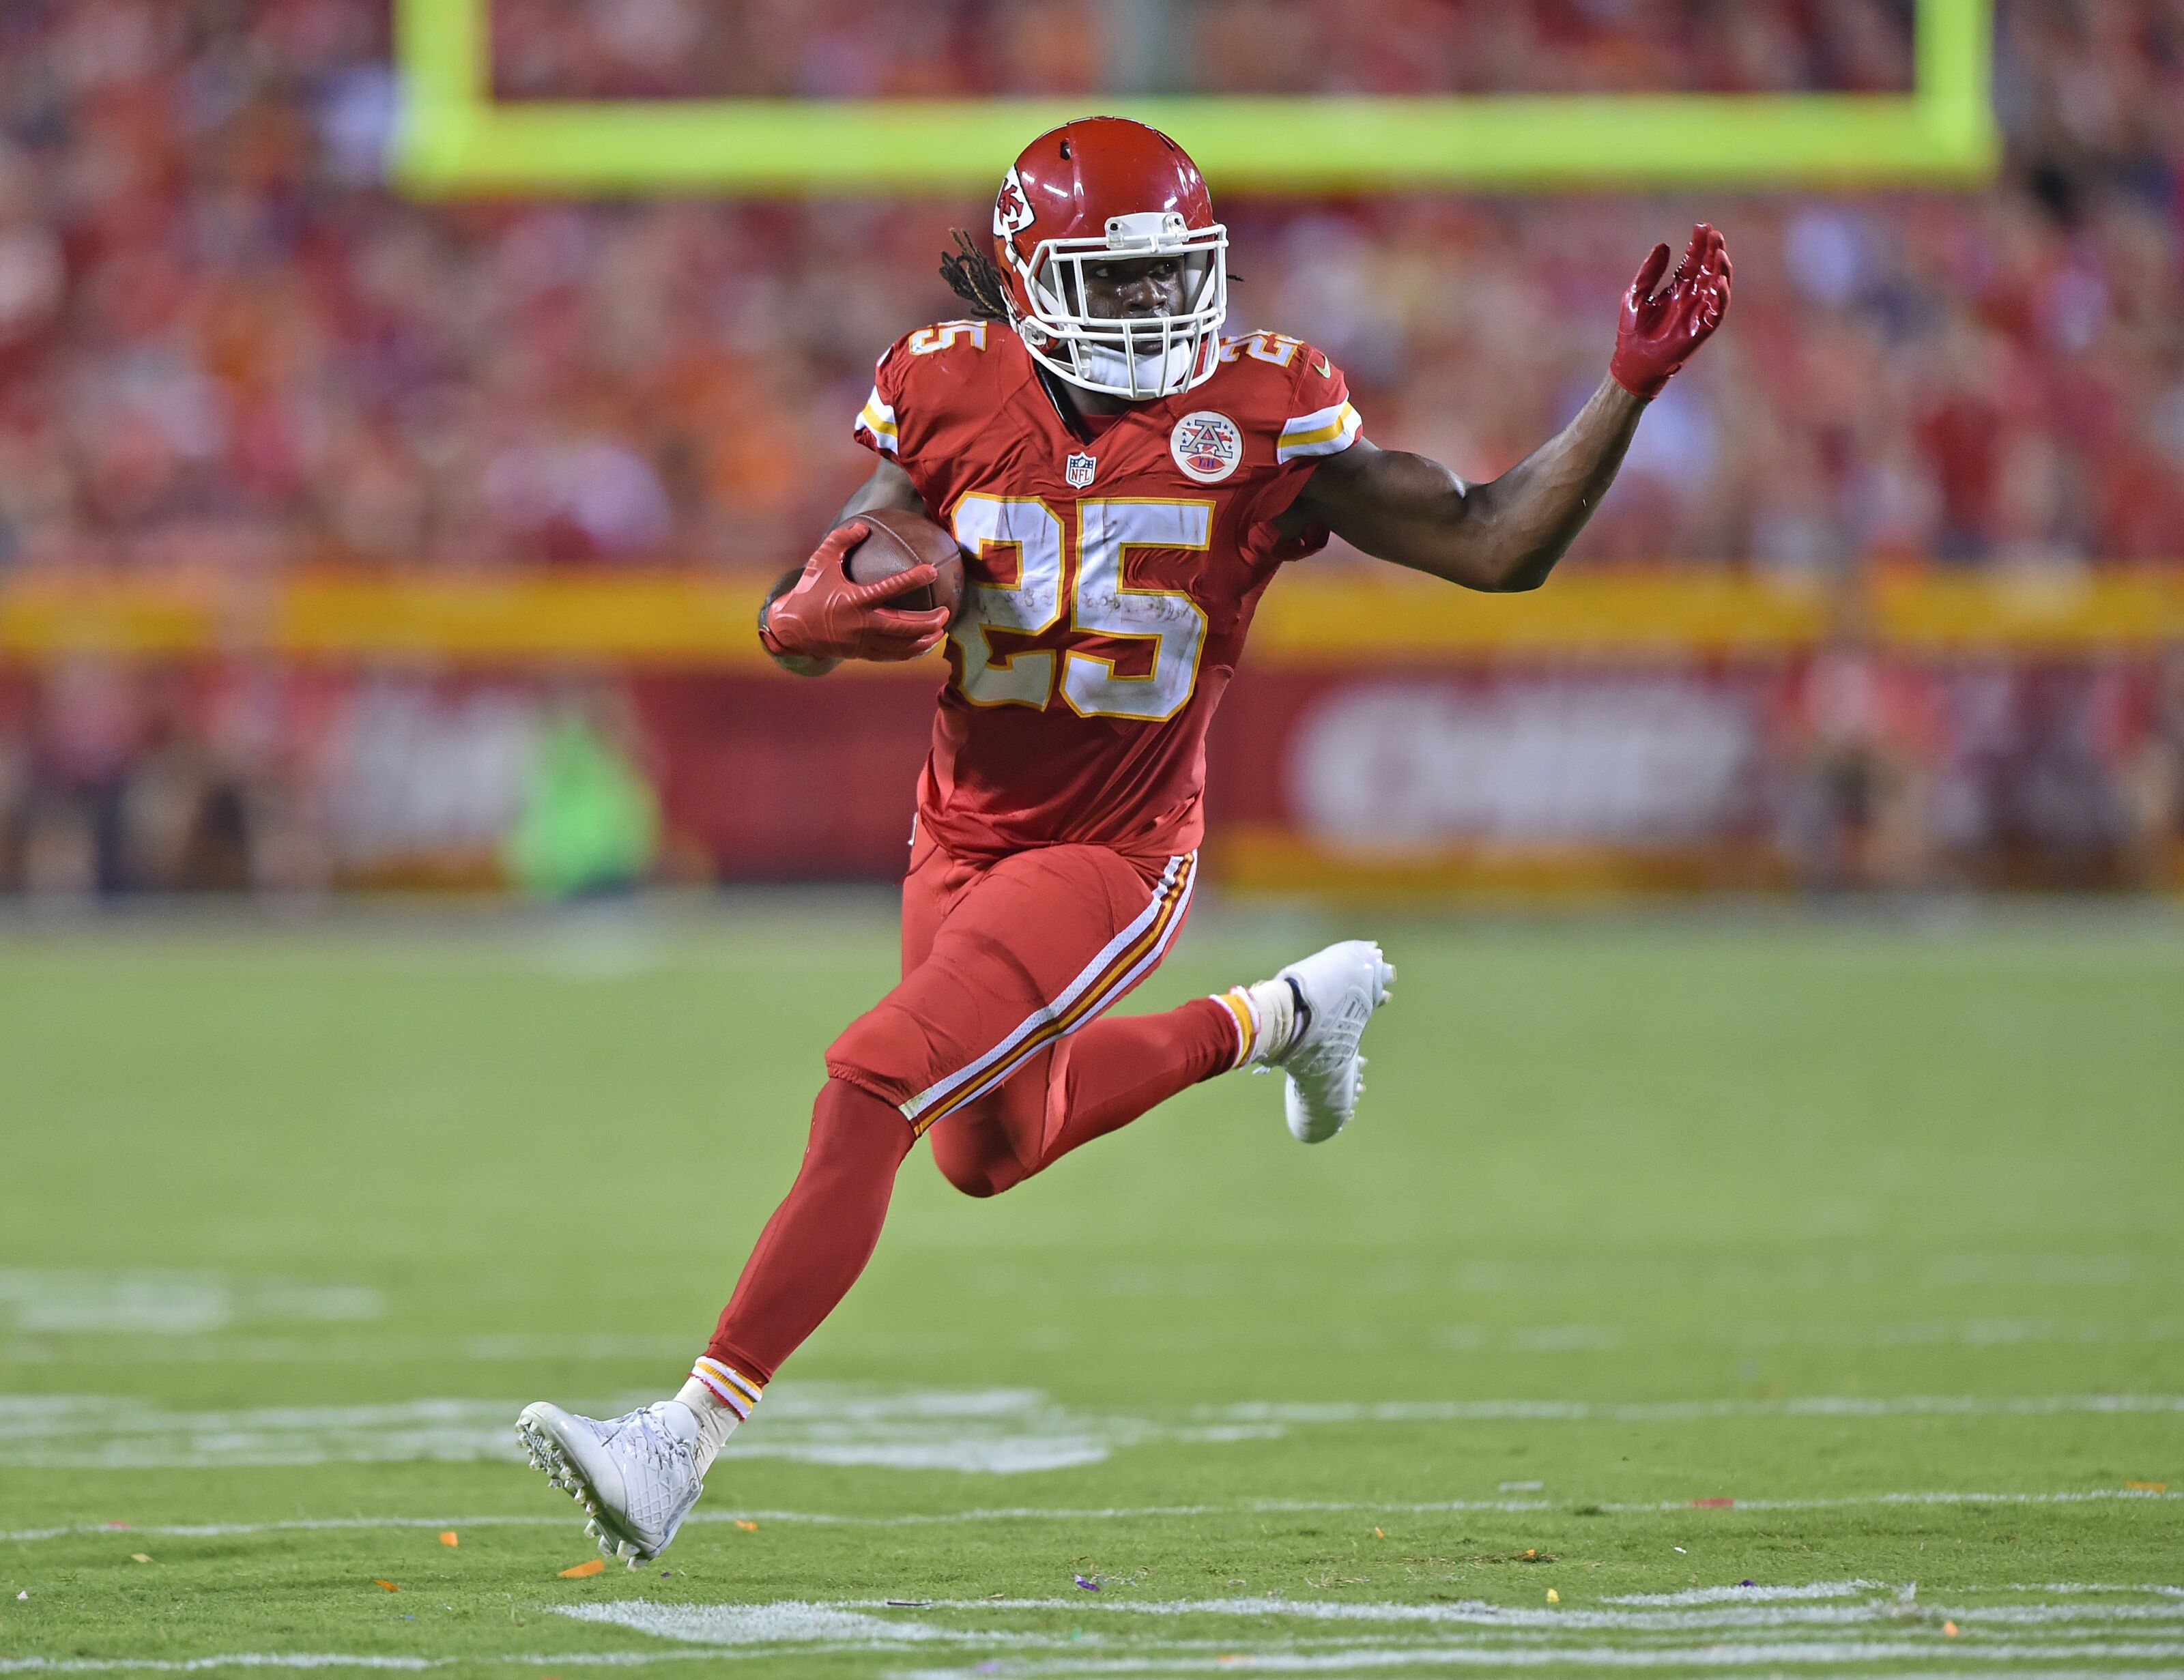 Kansas City Chiefs: Does Jamaal Charles belong in Hall of Fame?